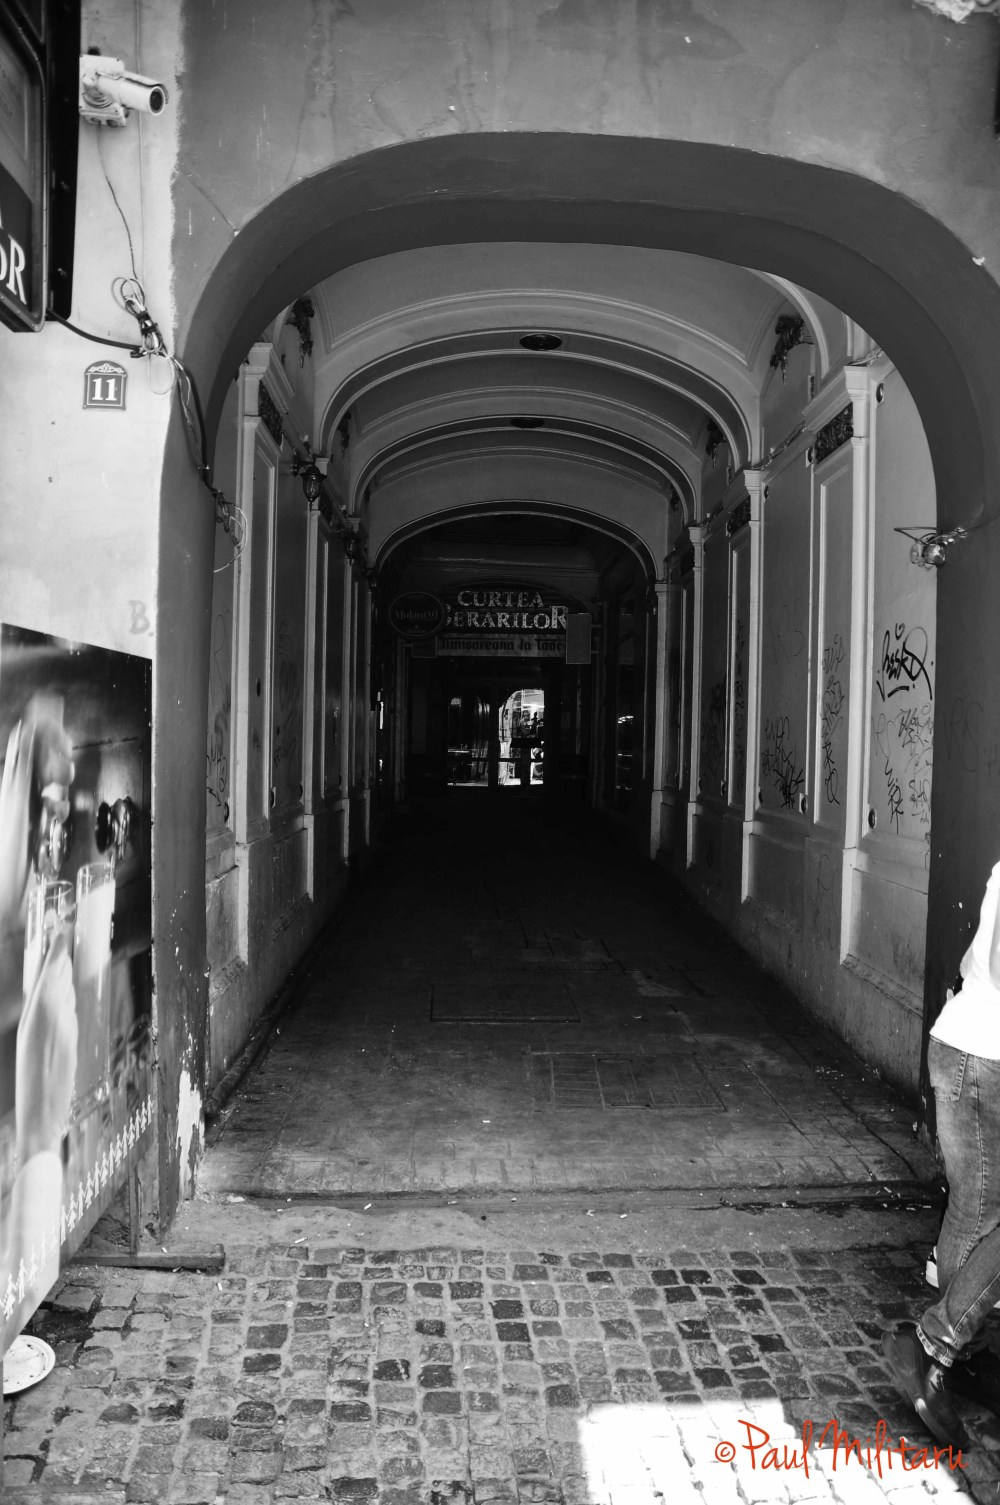 at the end of the hall